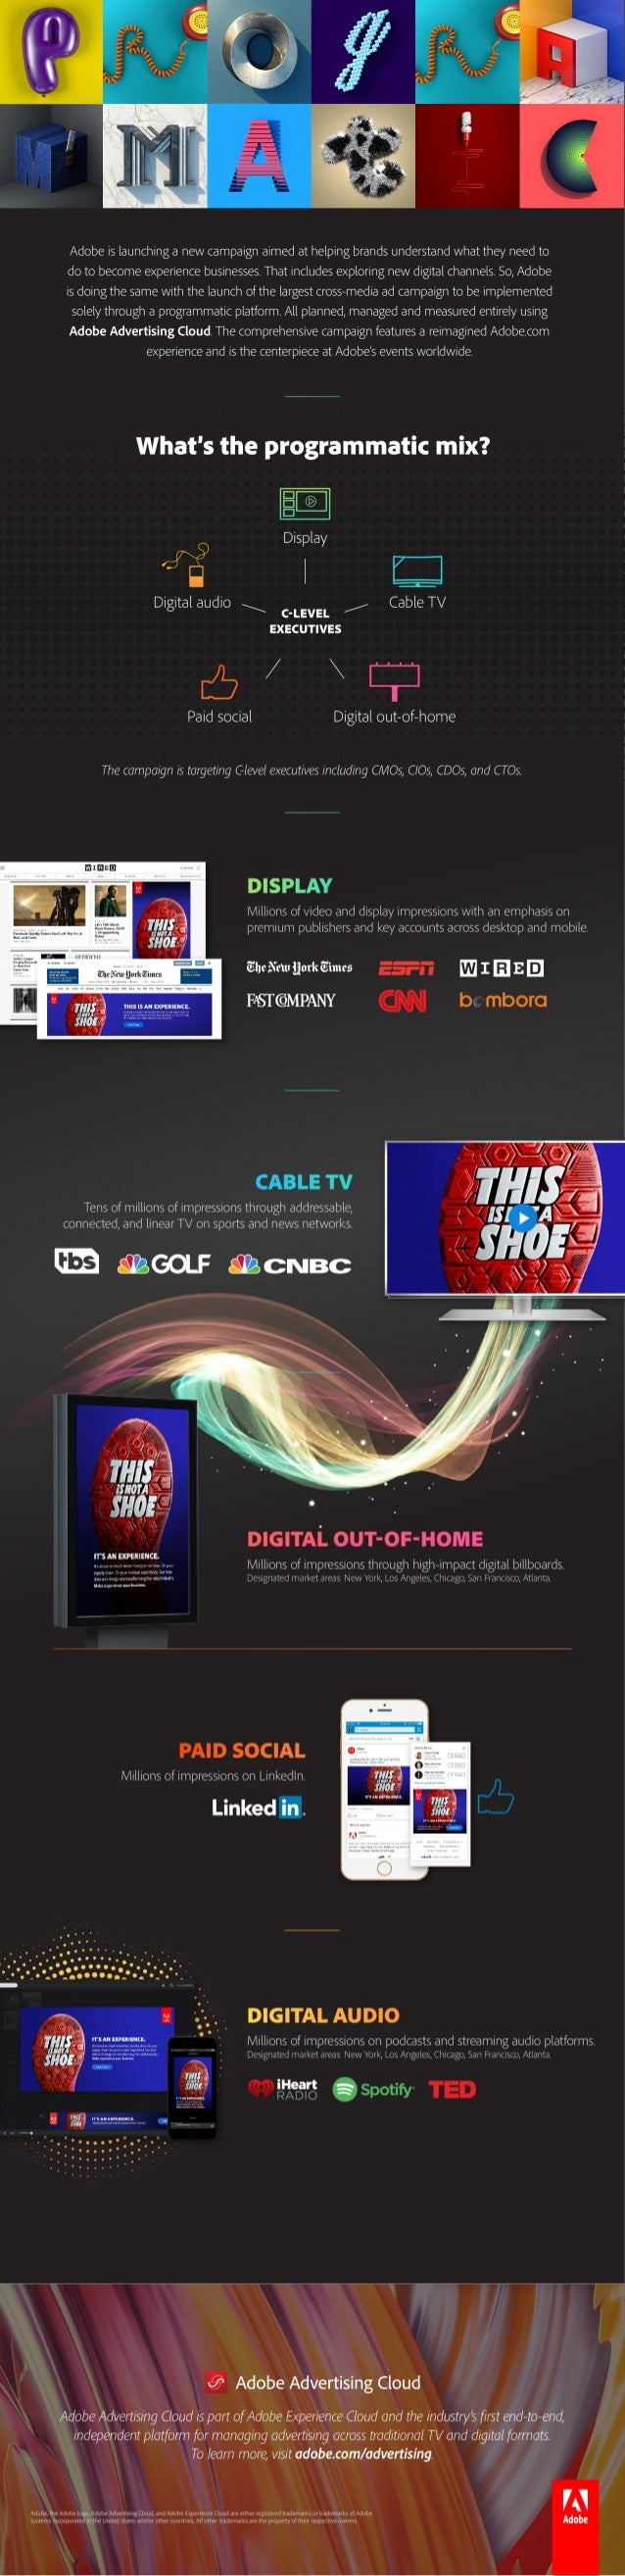 Adobe Experience Business Infographic